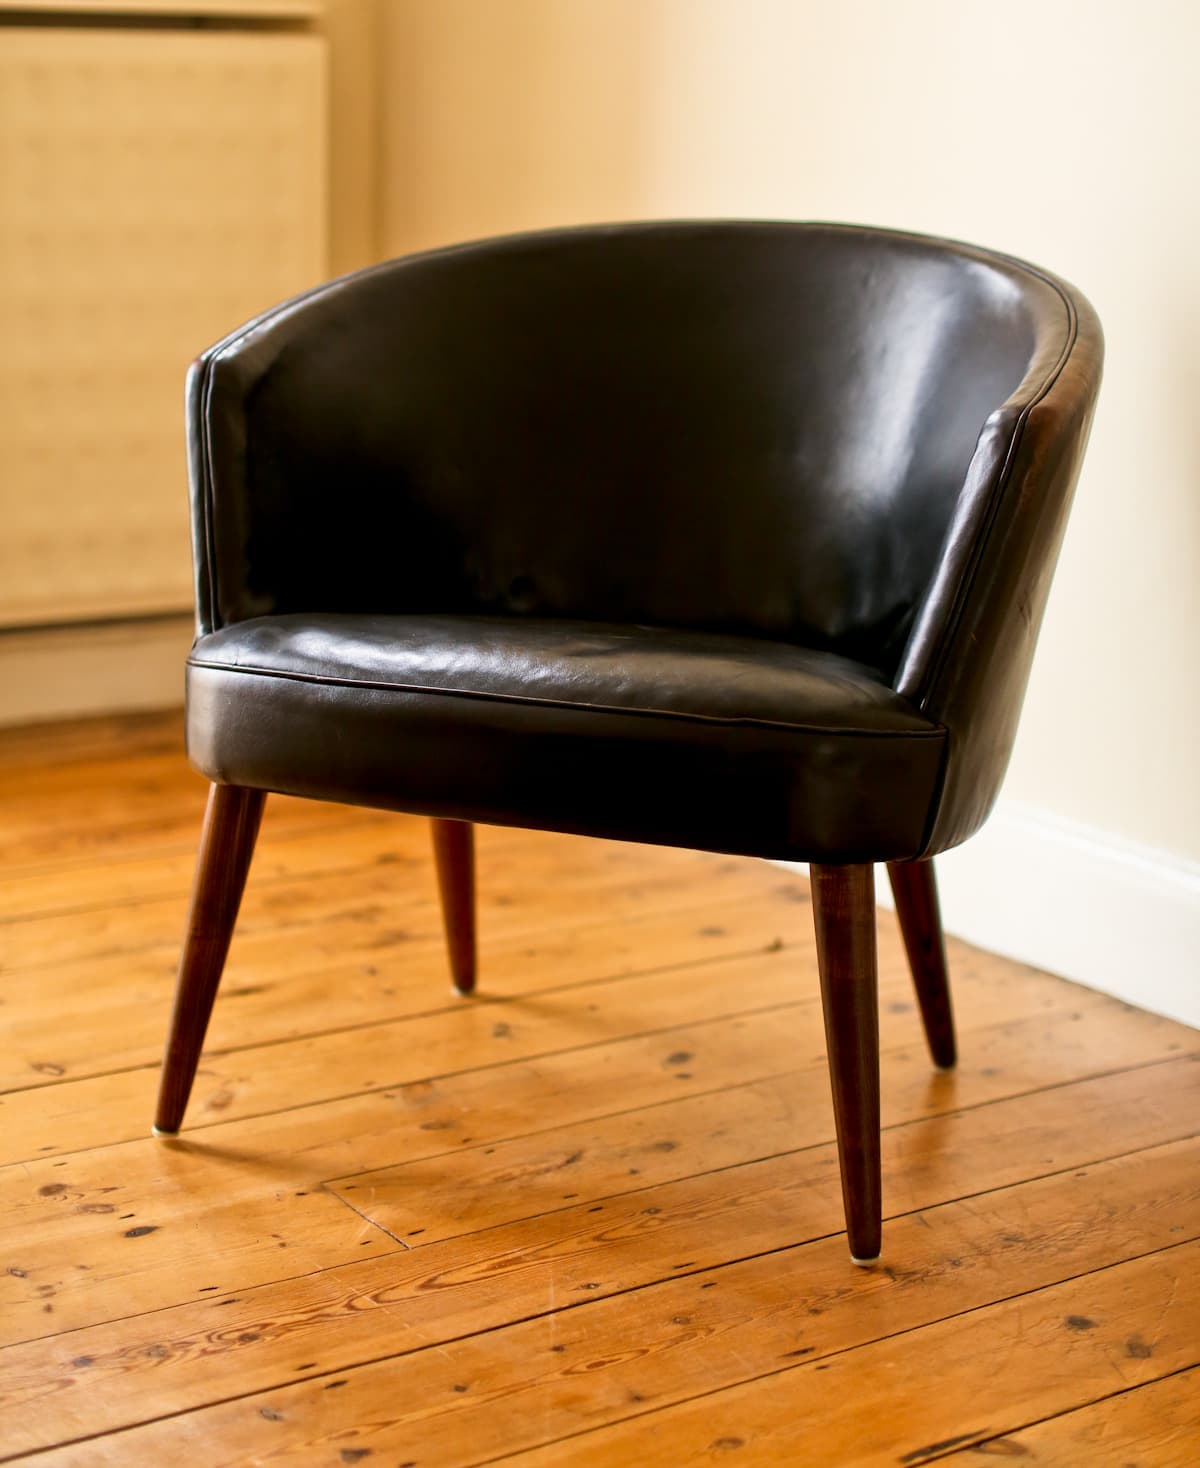 Mid century armchair leather Danish modern 1950's